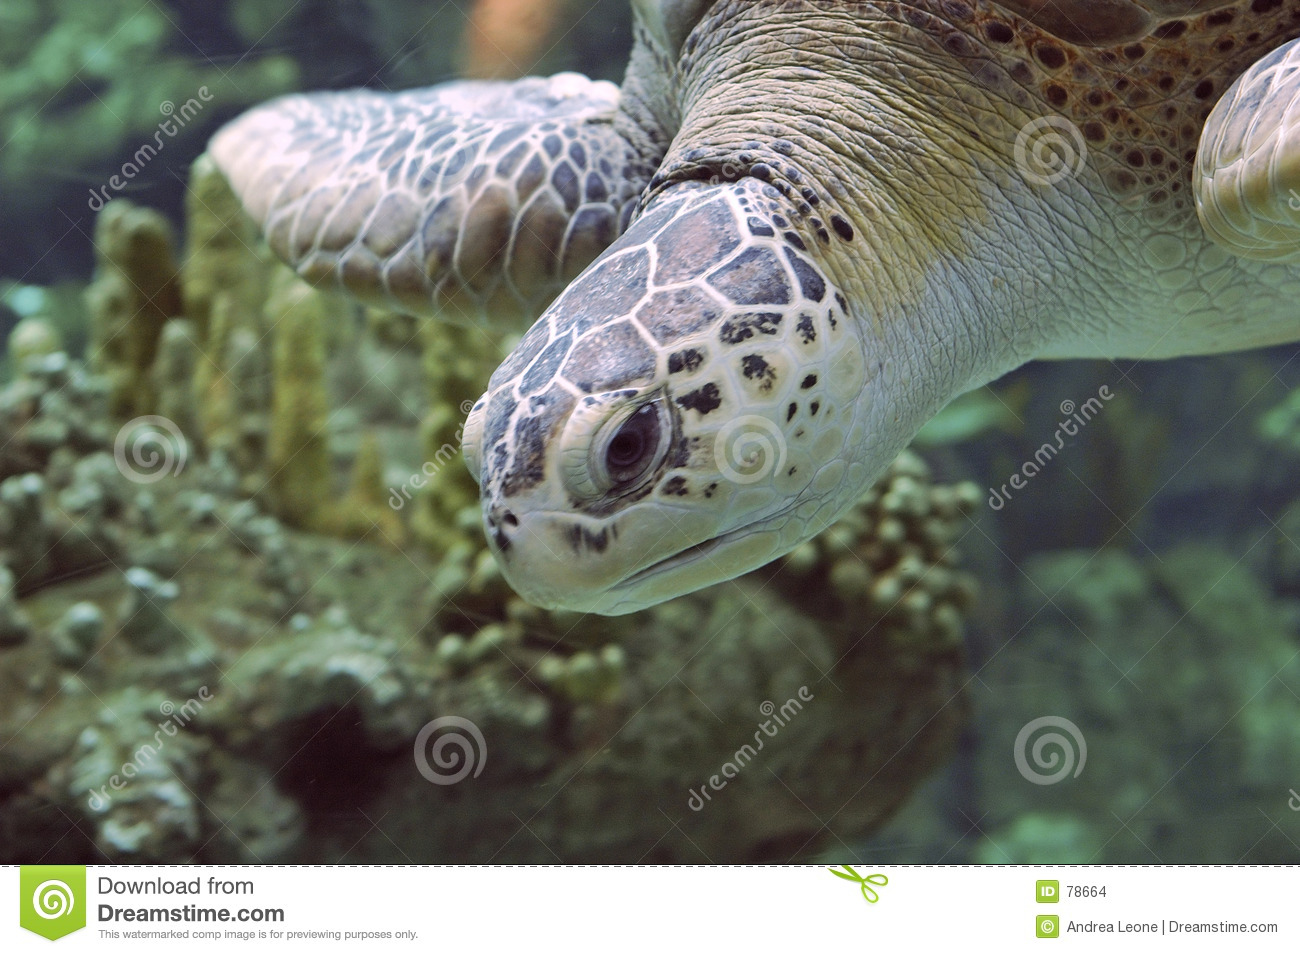 To seaturtle